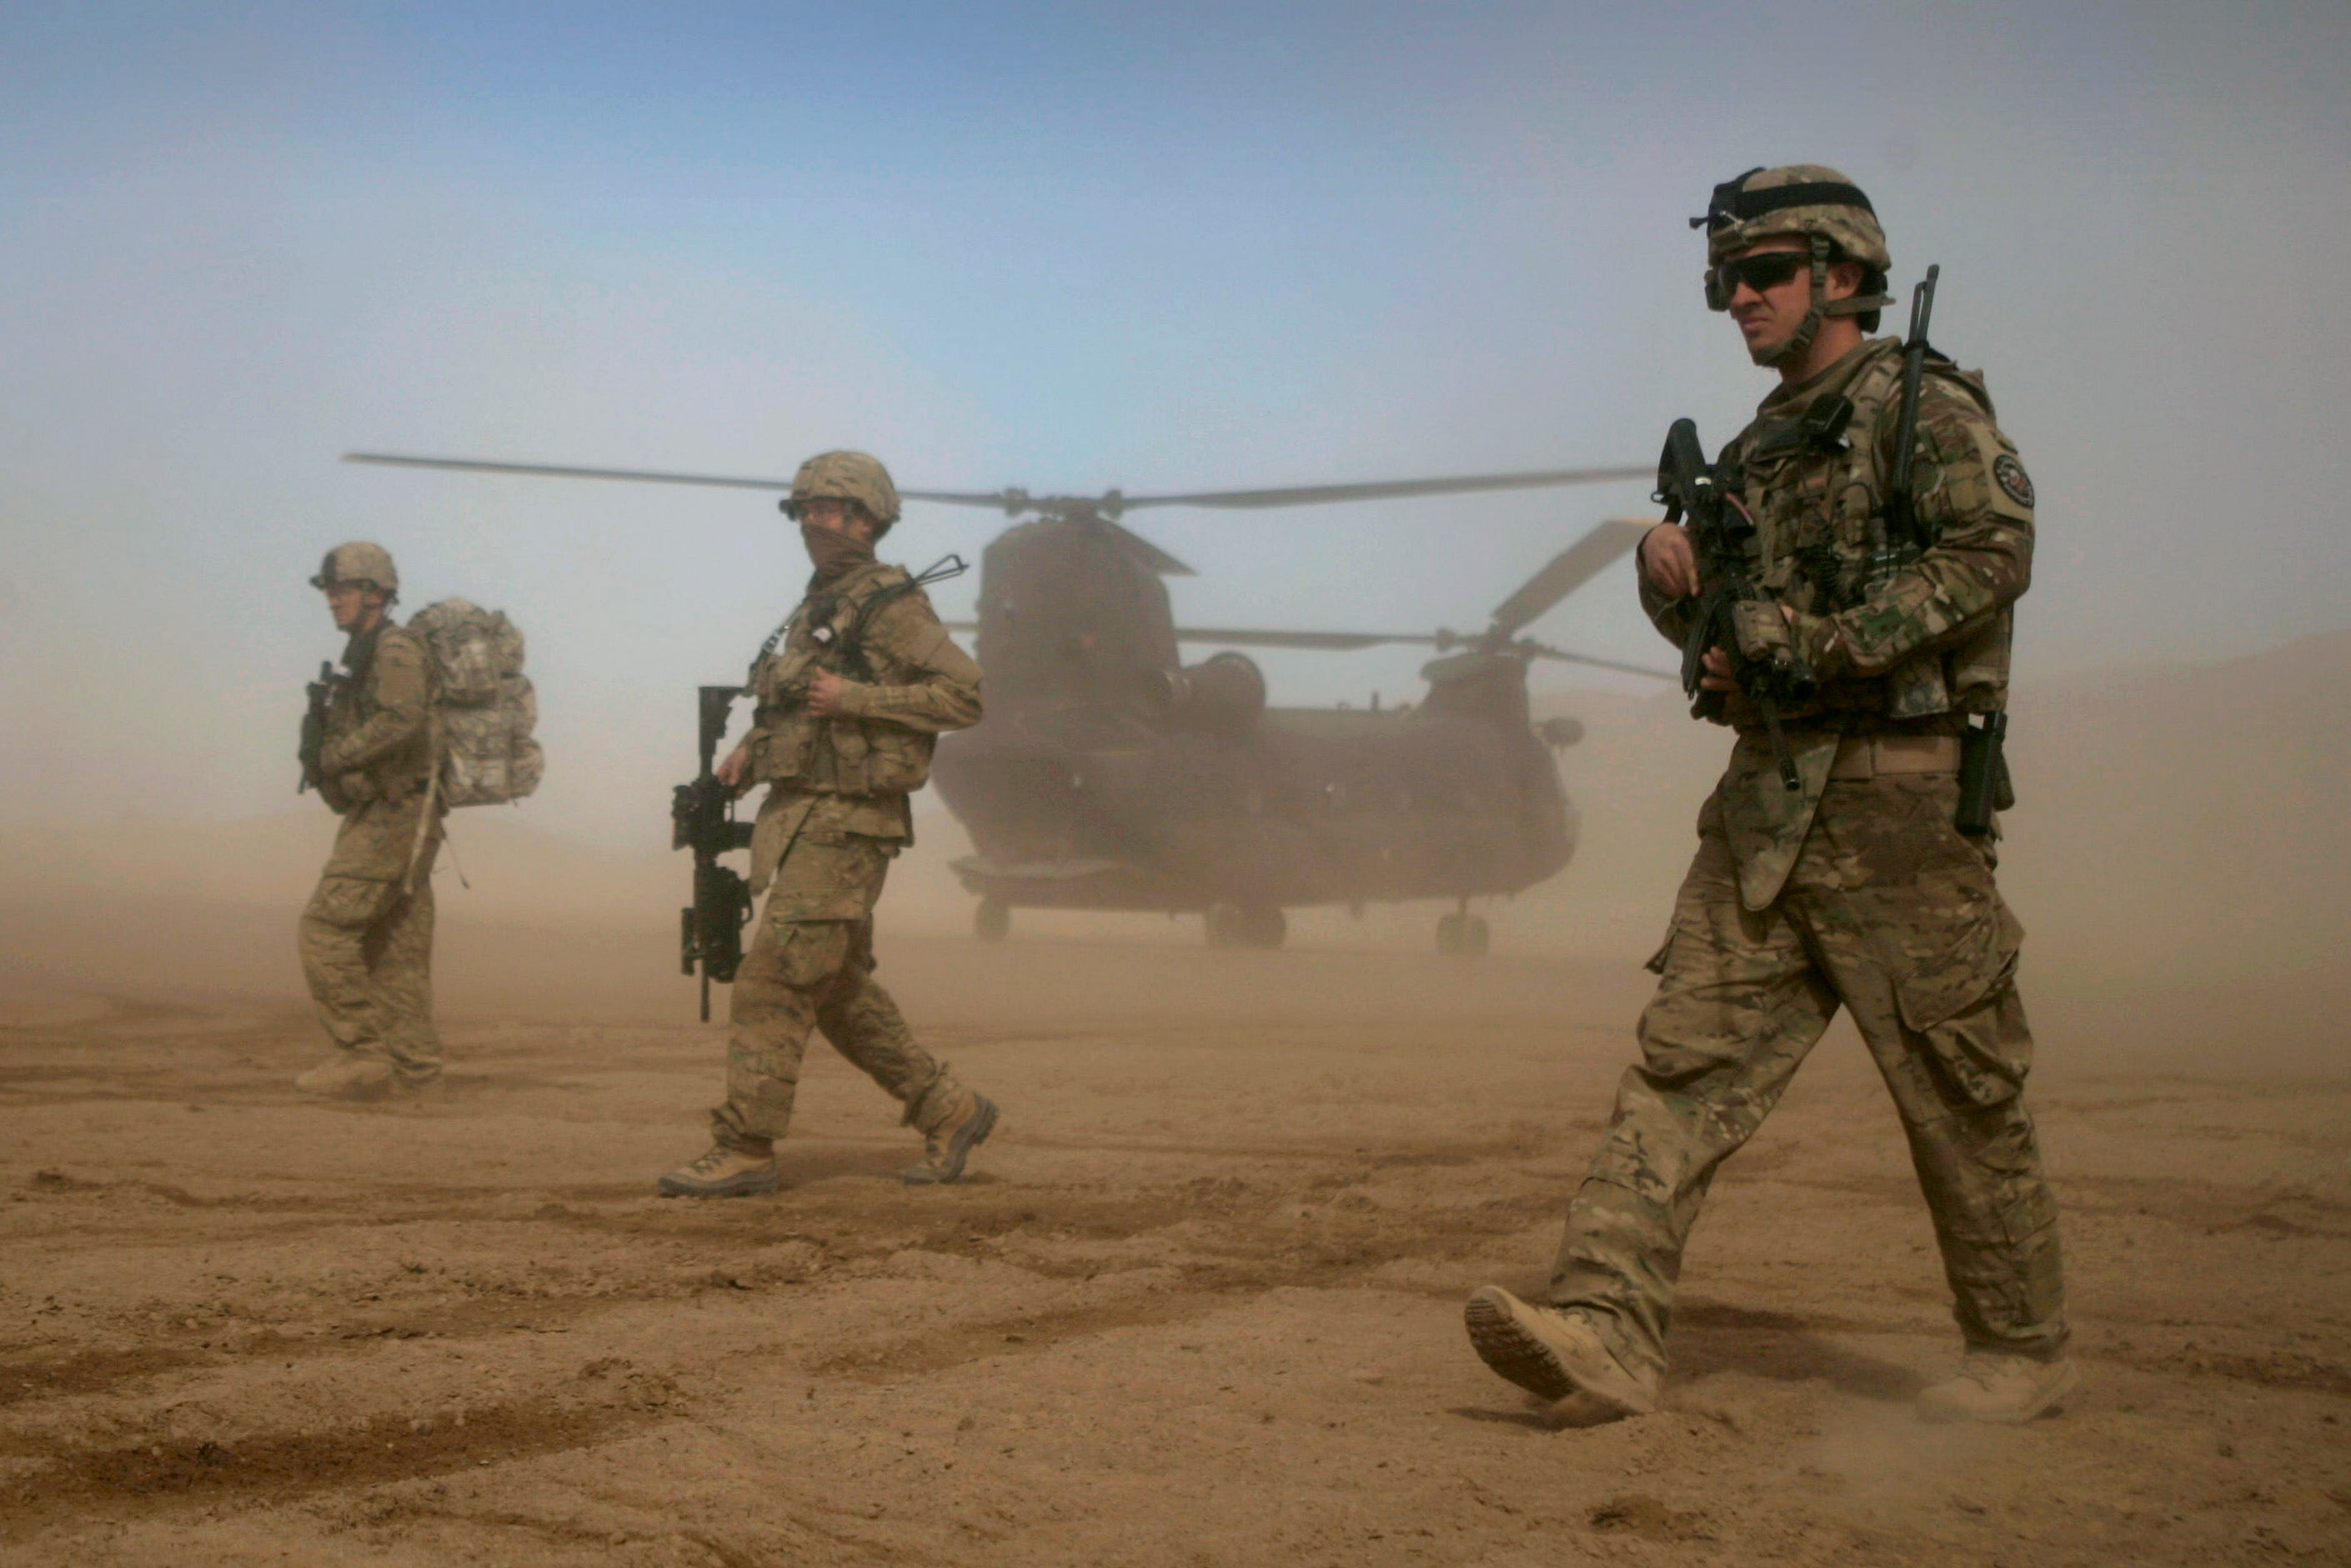 President Biden says U.S. troops will be pulled out of Afghanistan after almost 20 years